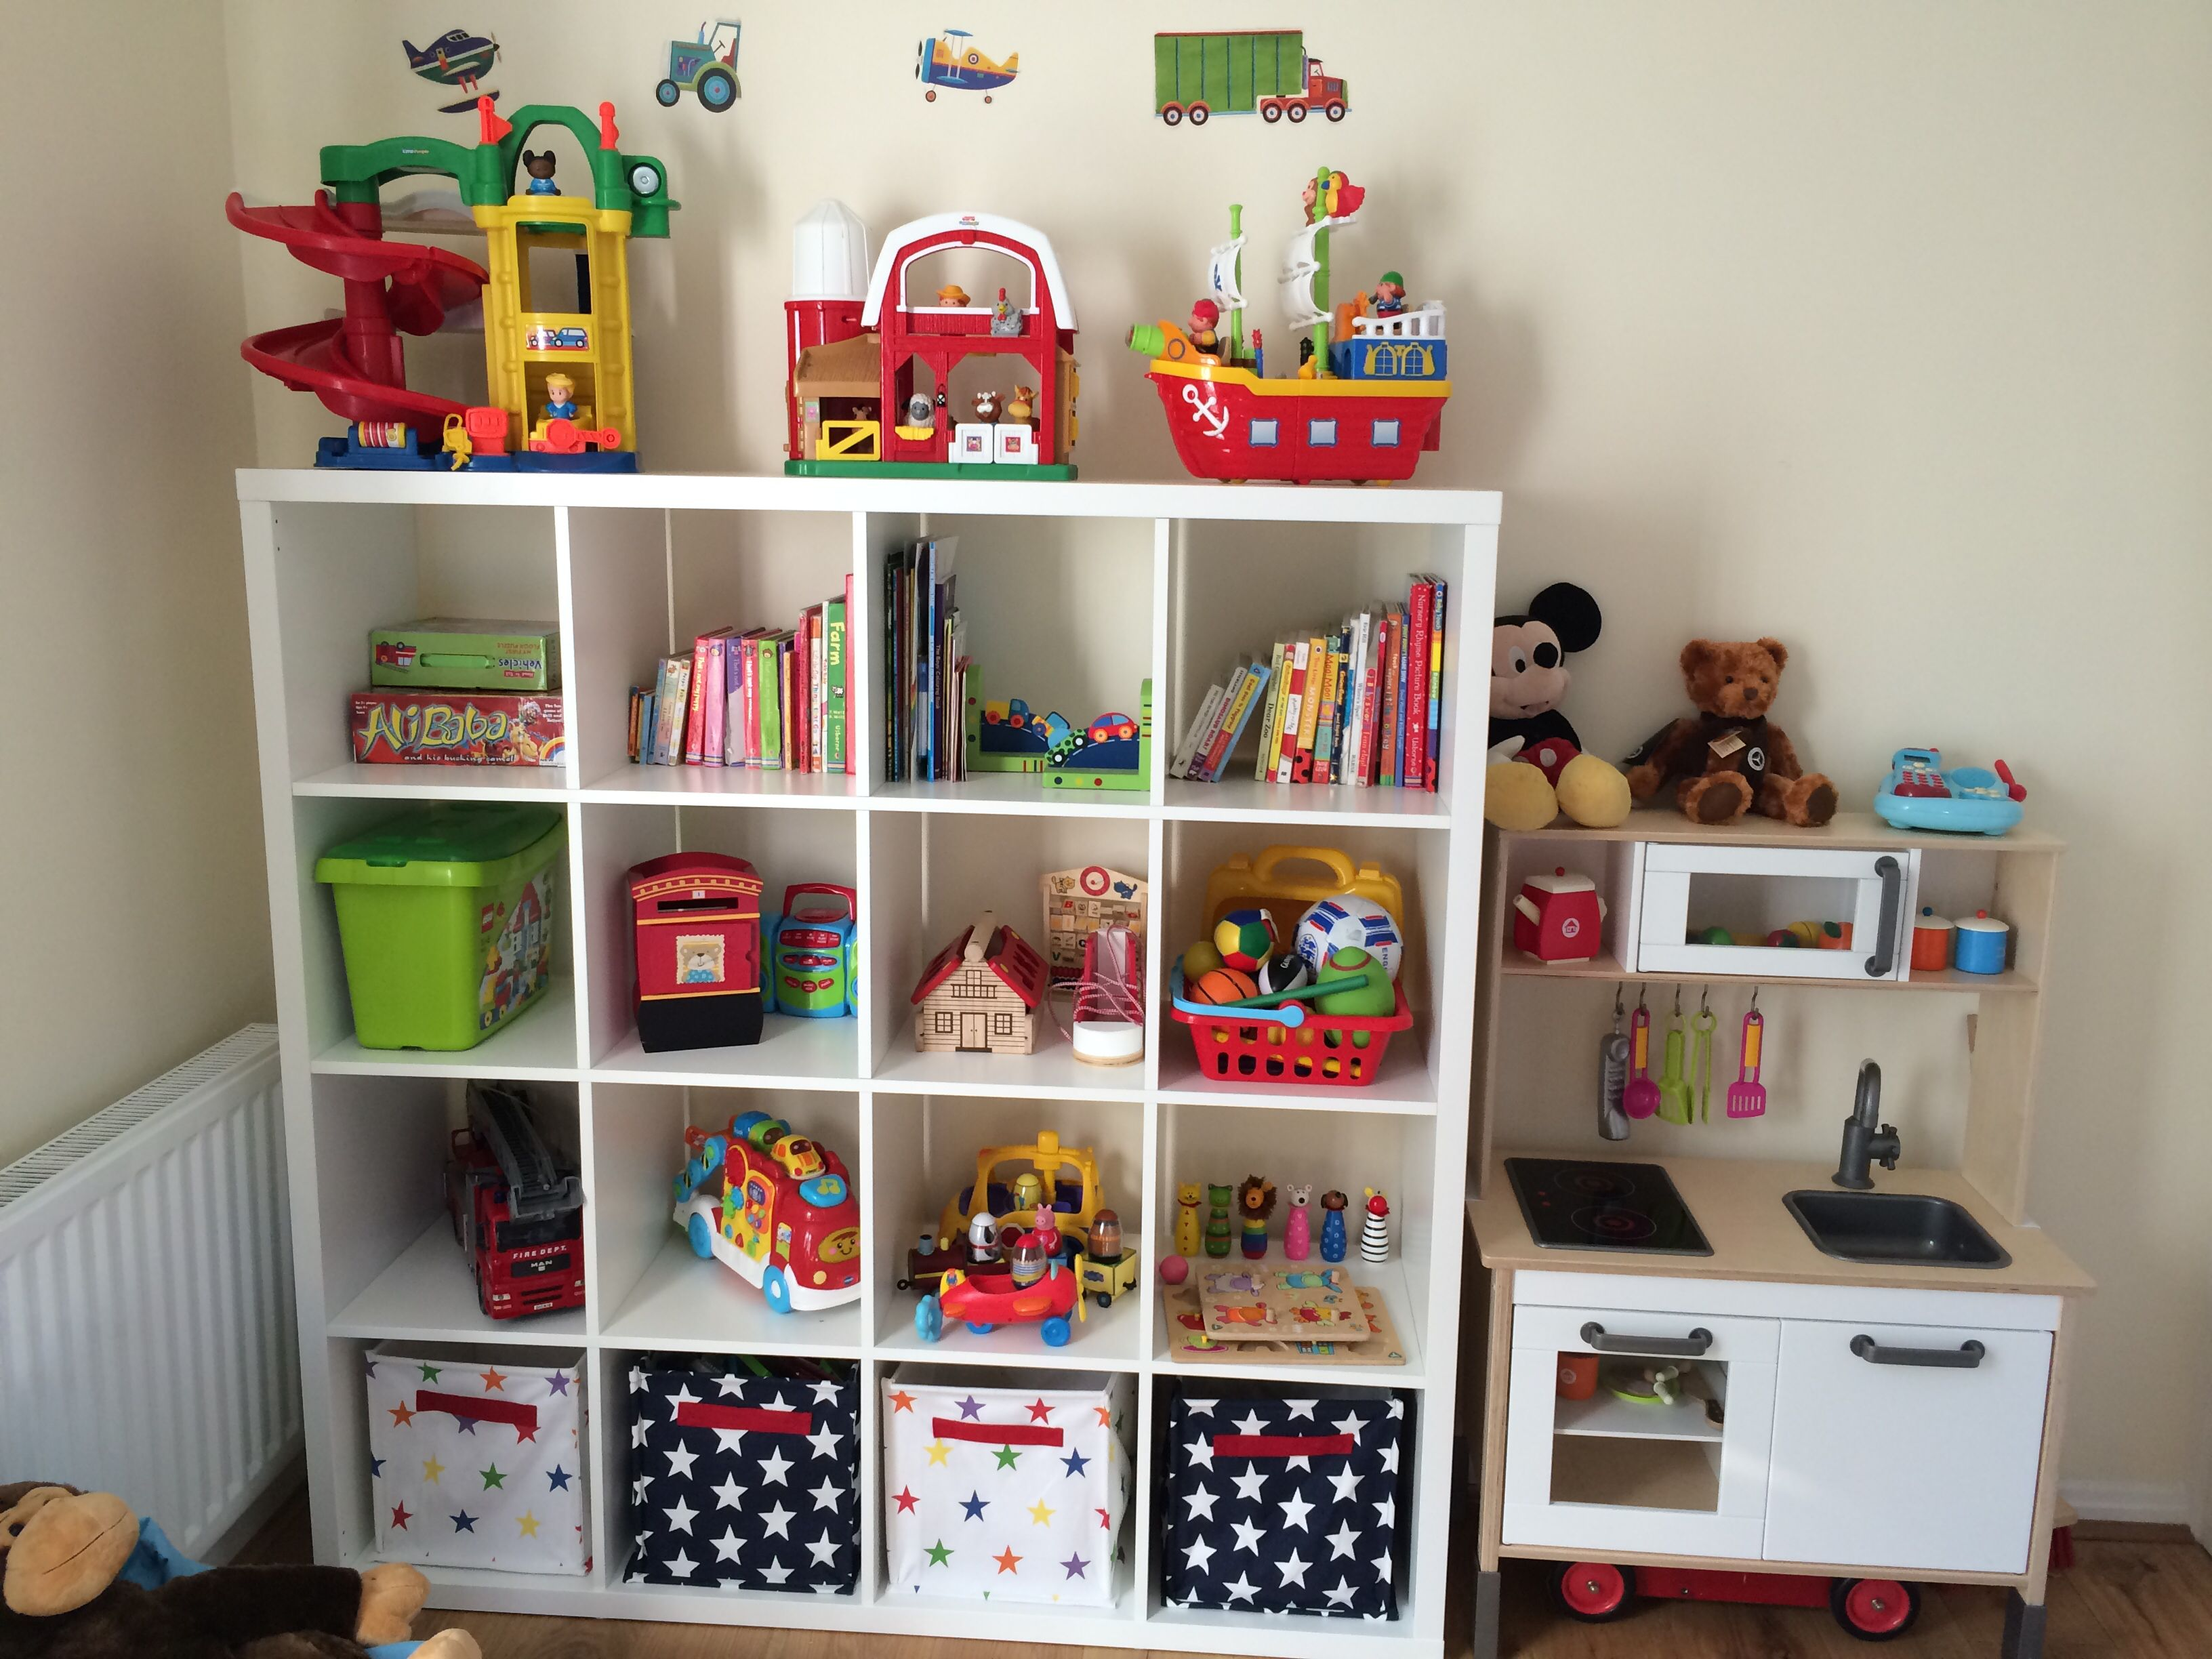 green very is across bookshelf it are them you bookshelves get children s when kelly plans come smart that ikea to pin at